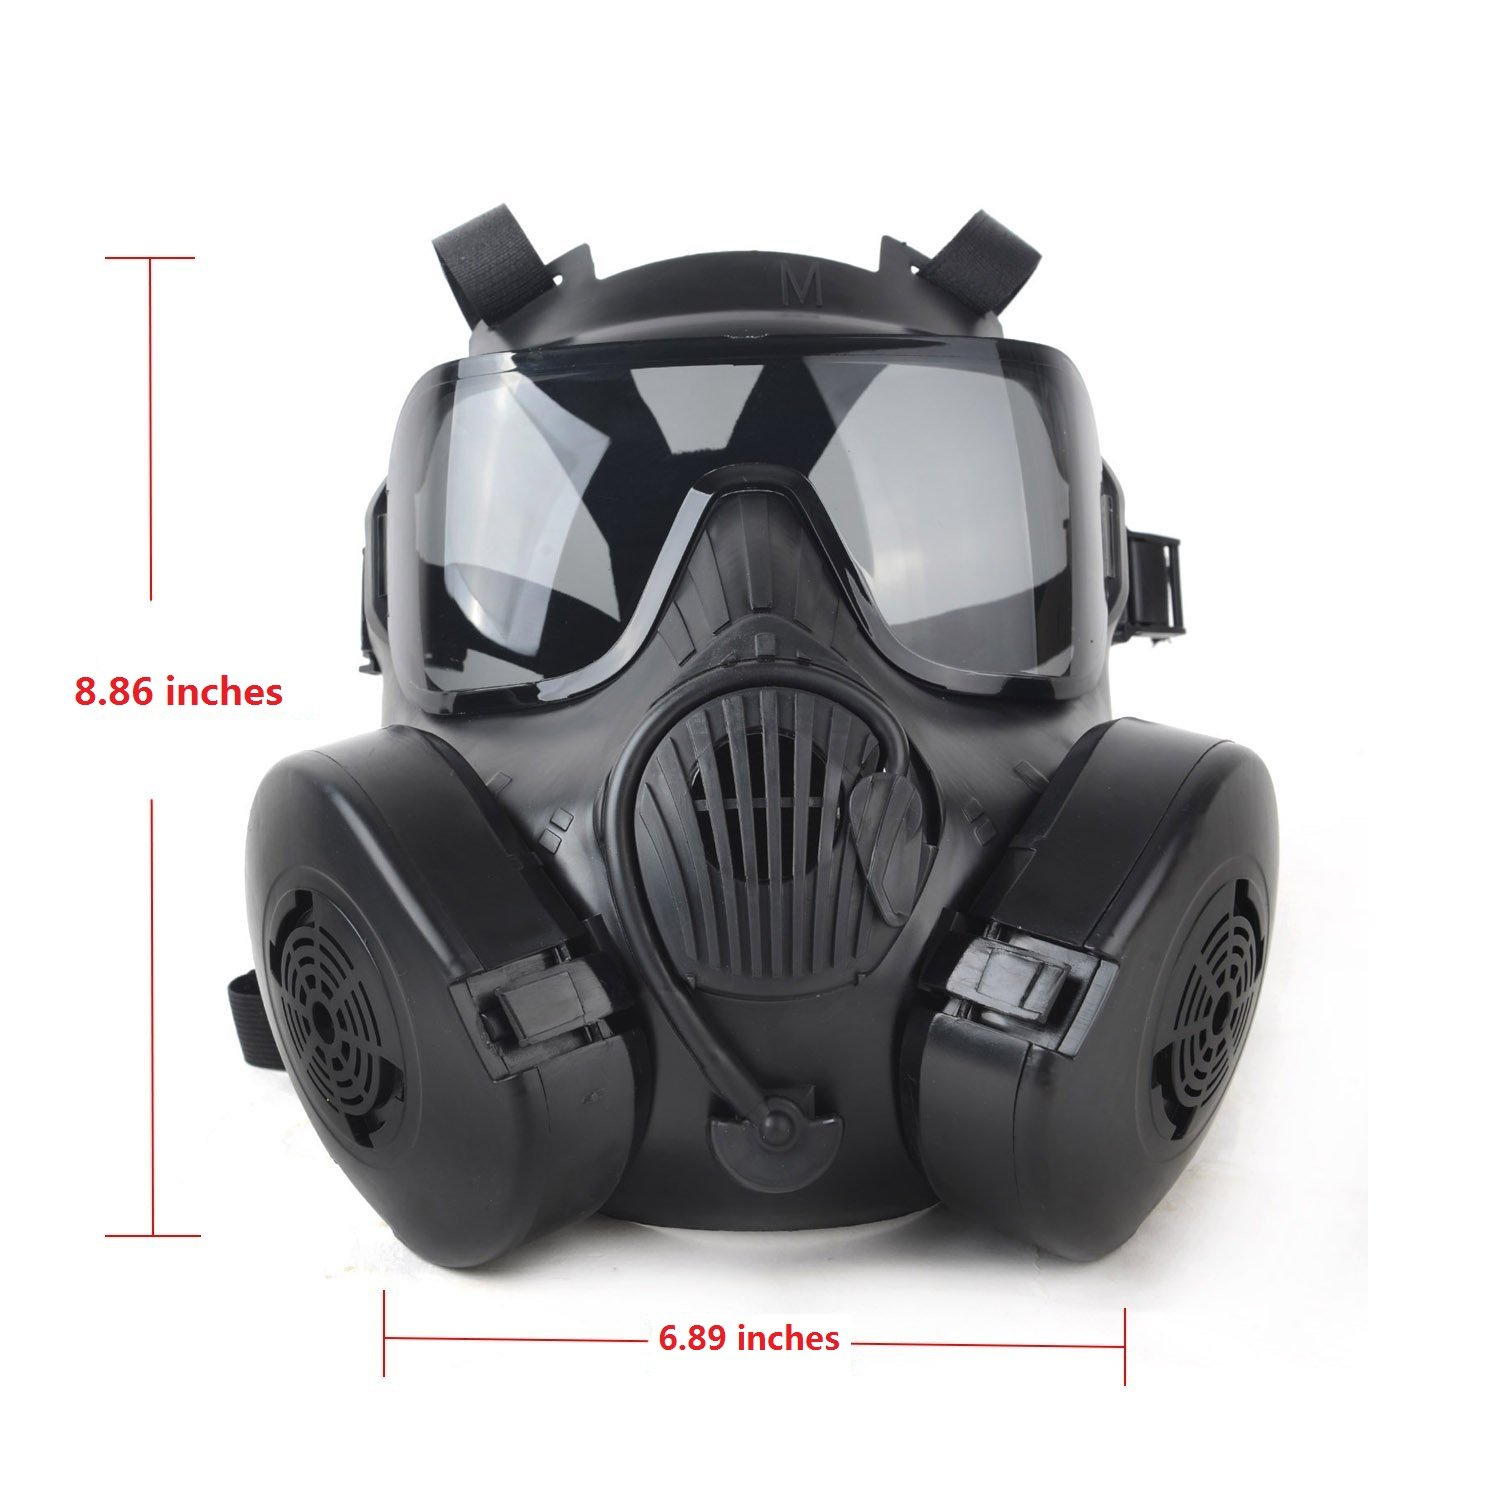 Fancymall-Mask M50 Masque de paintball Style masque à gaz noir Noir 22.5*17.5cm: Amazon.es: Deportes y aire libre